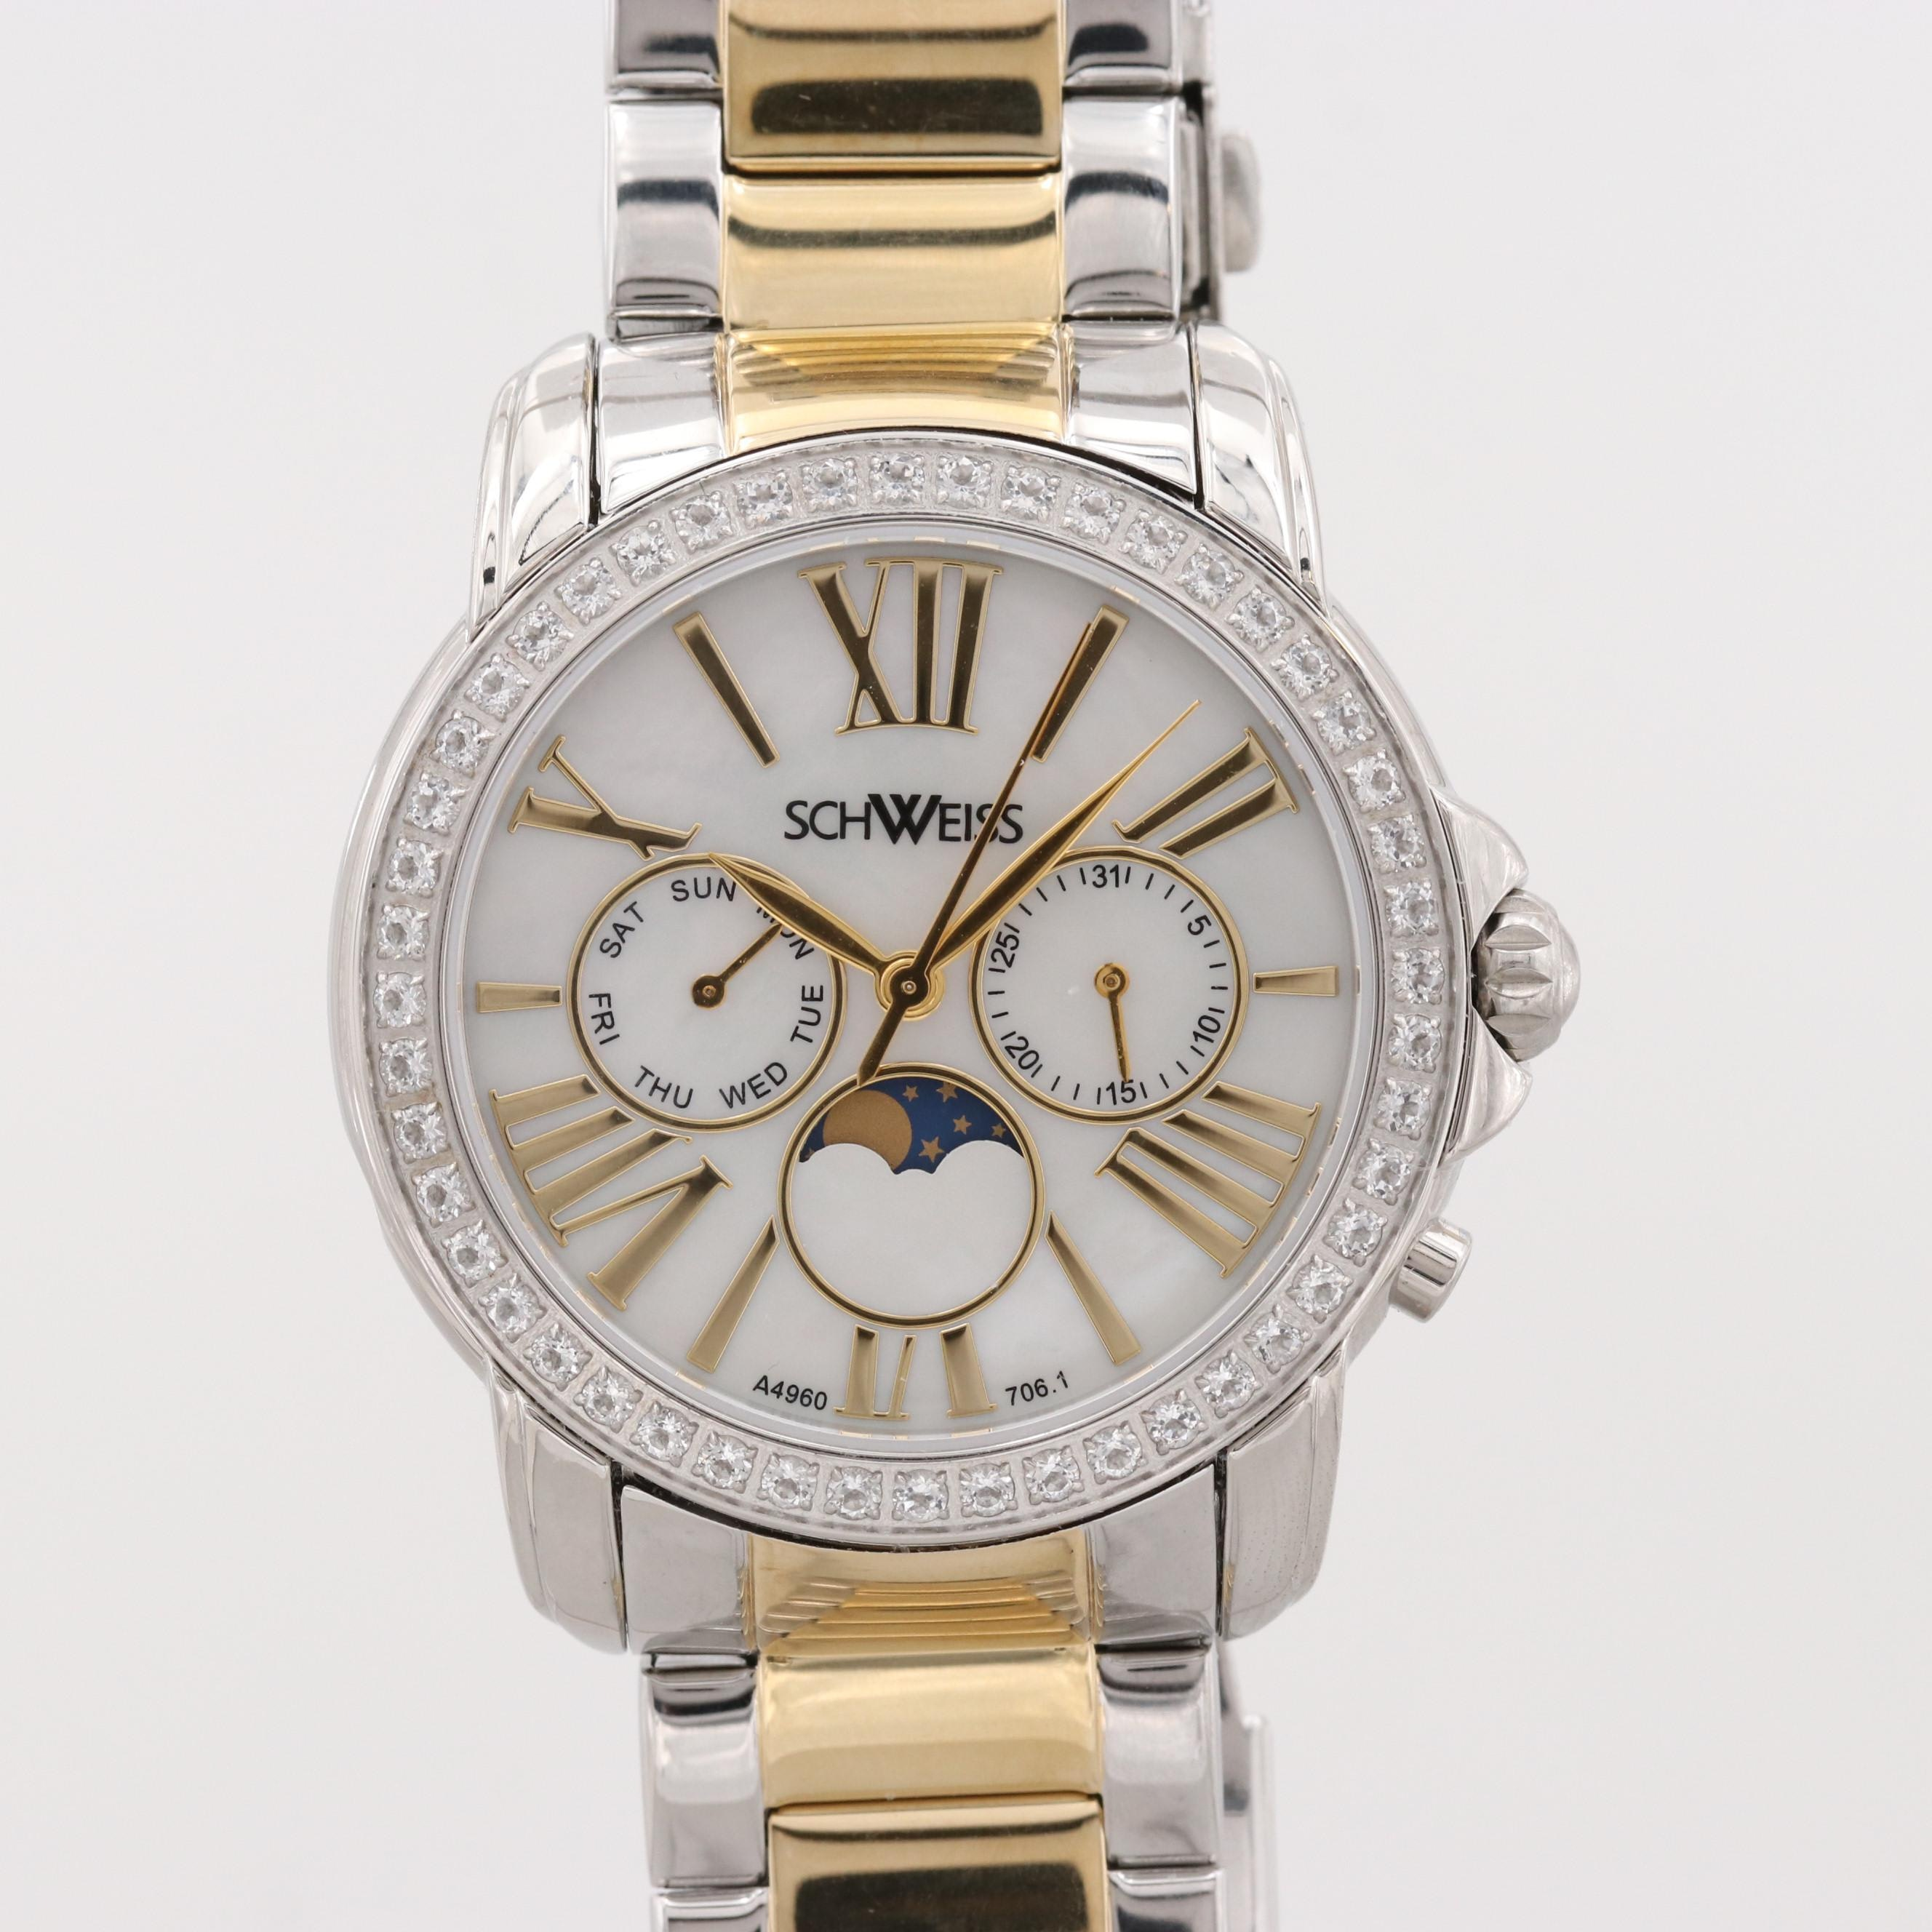 Schweiss Two-Tone Quartz Wristwatch With Calendar Moon Phase Indicator